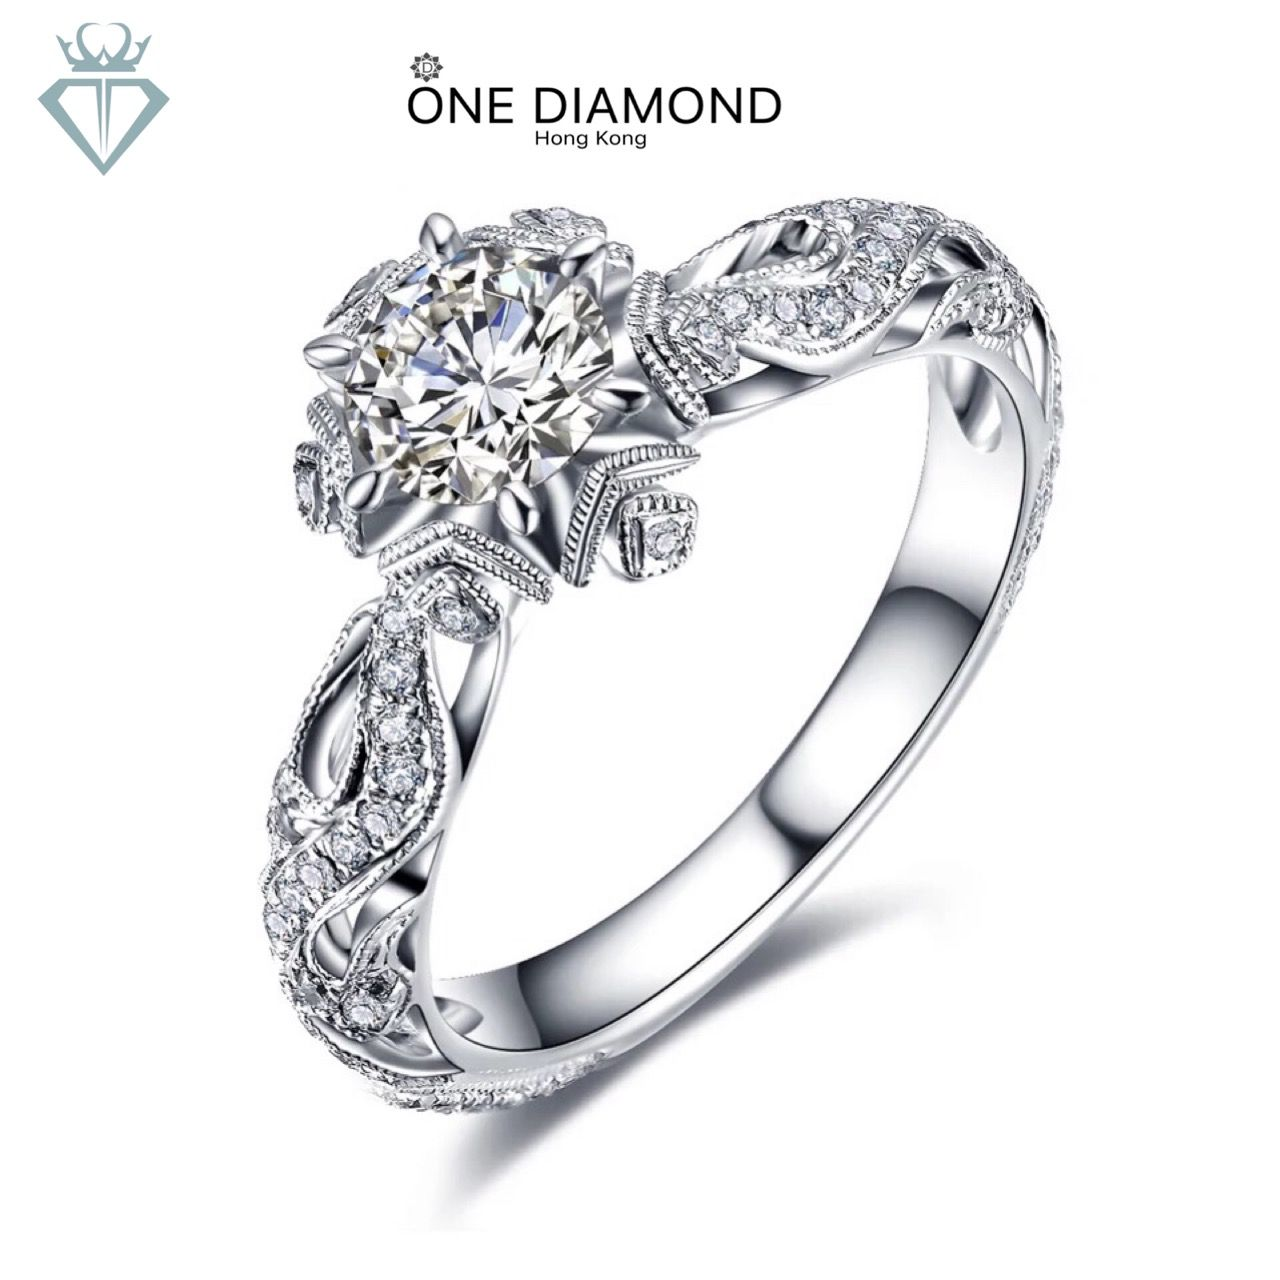 Pin by 一鑽香港店 on one diamond 一鑽 Colored engagement rings